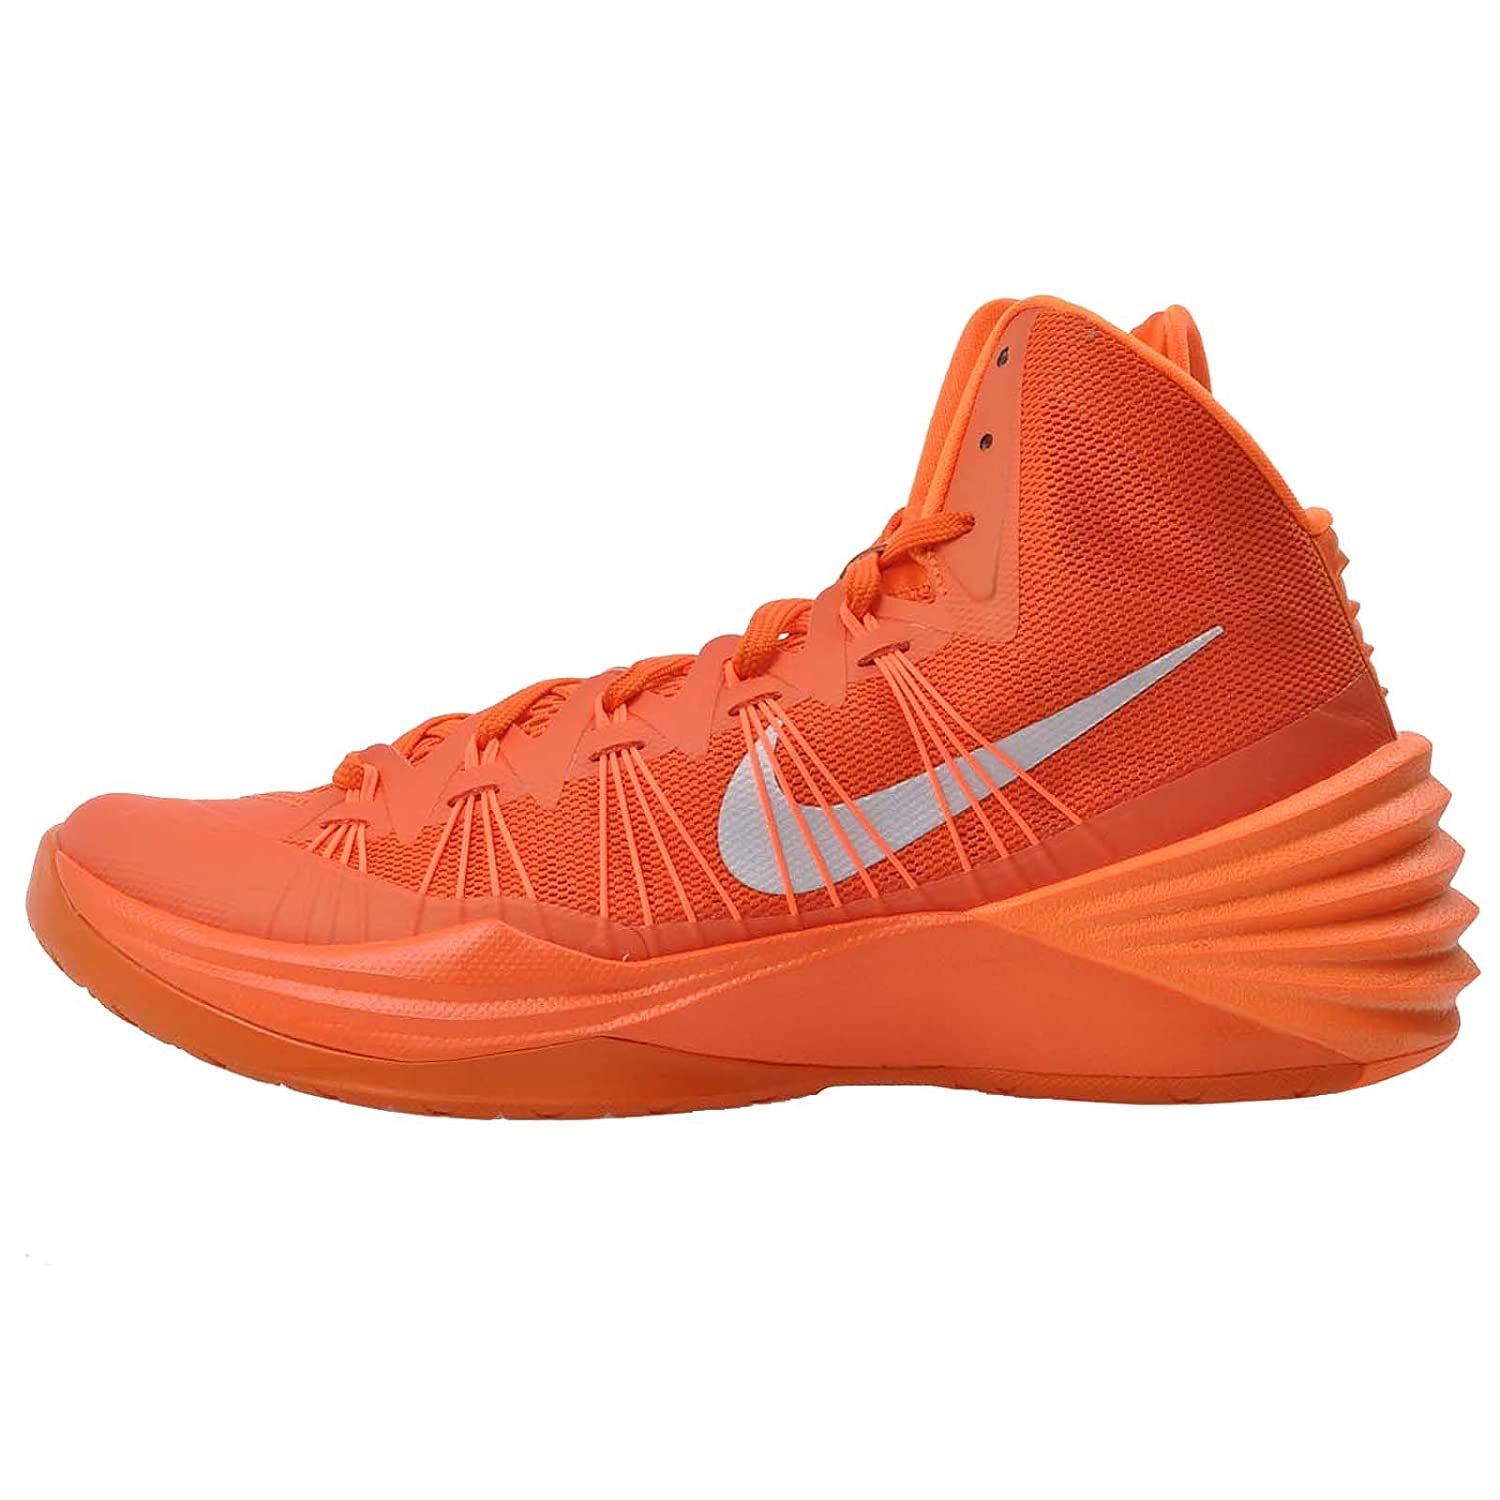 69a8db9e3f21 Nike Hyperdunk 2013 TB - Brilliant Orange   Metallic Silver-Total Orange